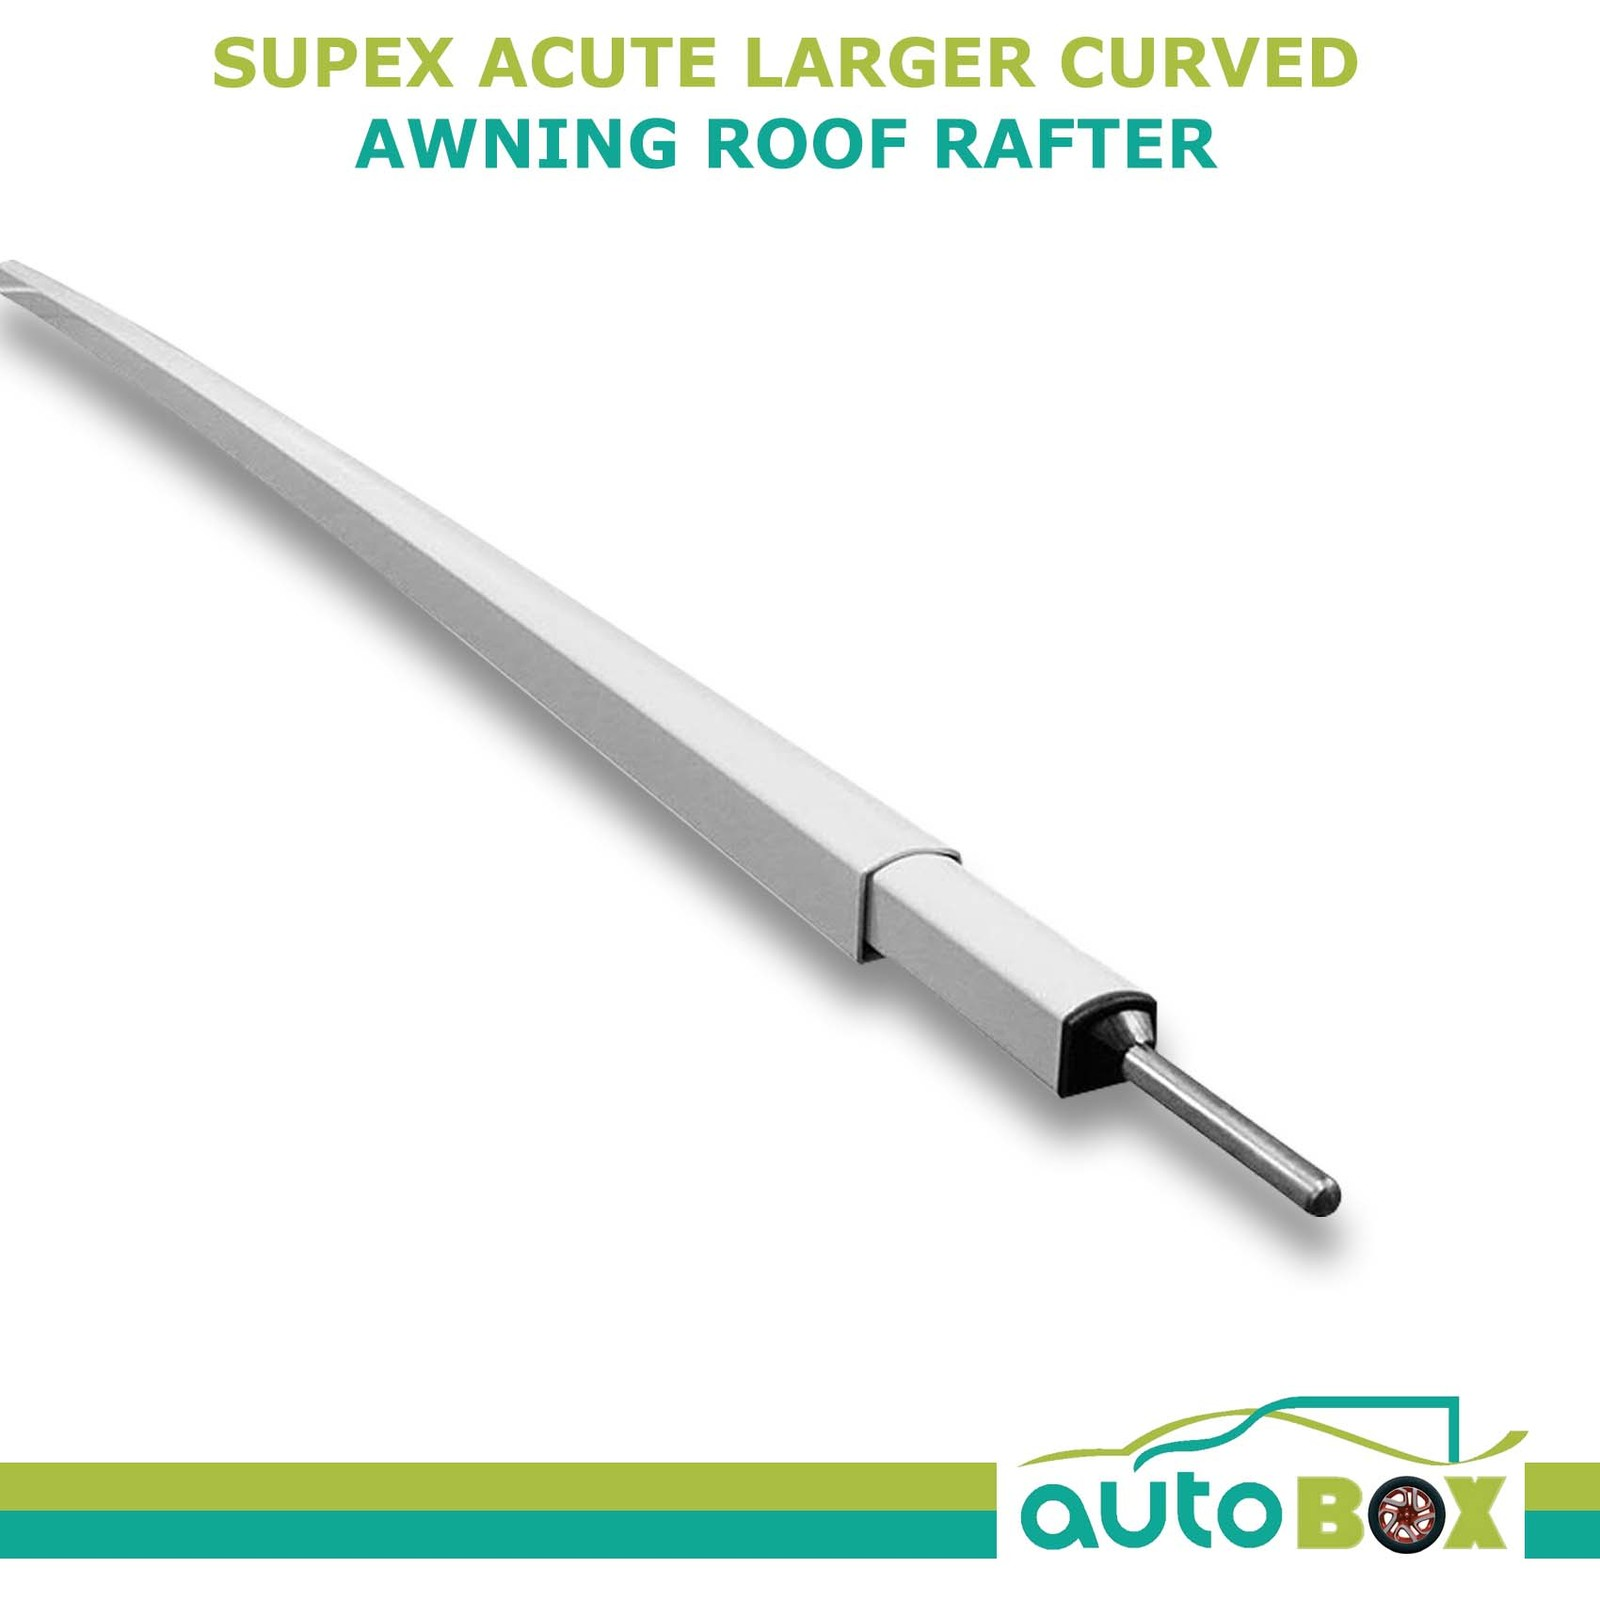 Supex Acute Larger Curved Caravan Awning Roof Rafter